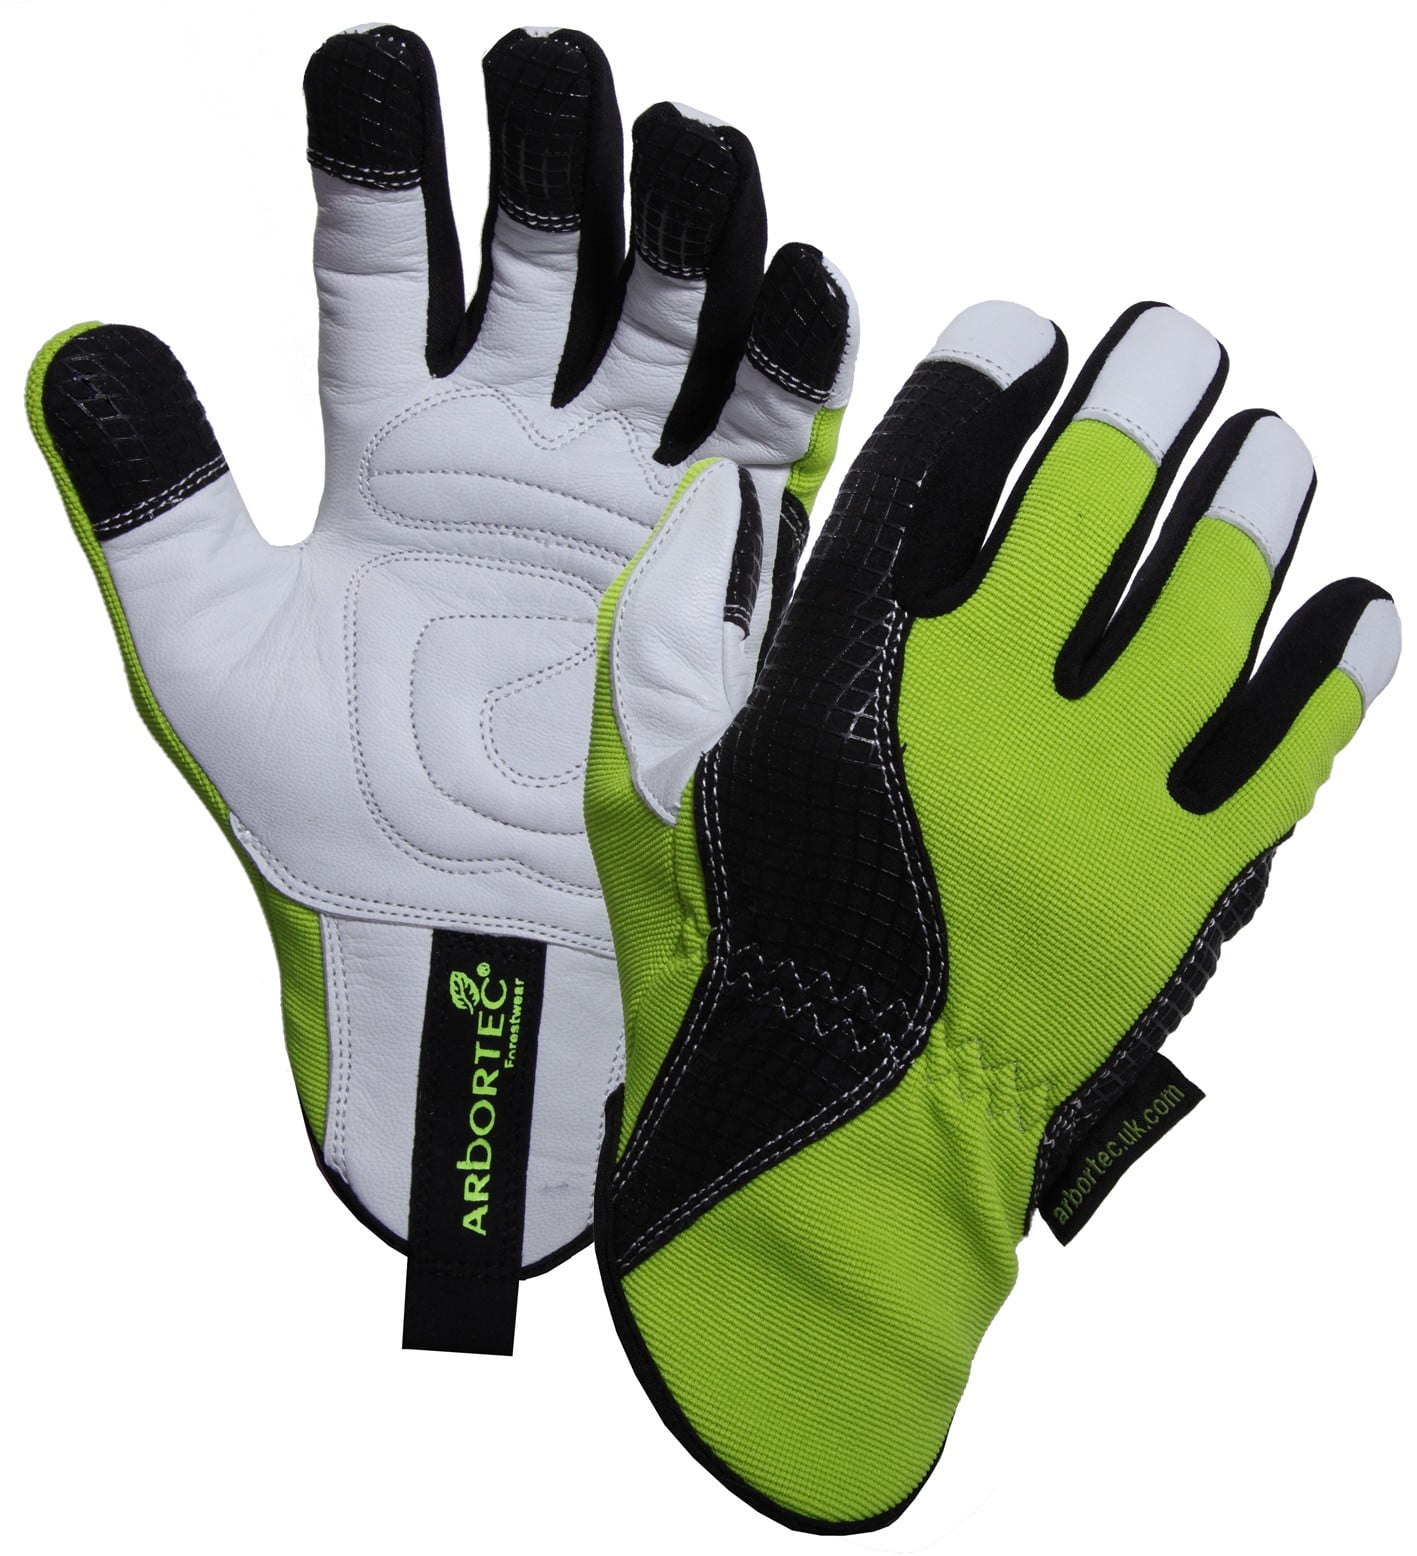 Arbortec Pro 1550 Climbers Chainsaw Gloves